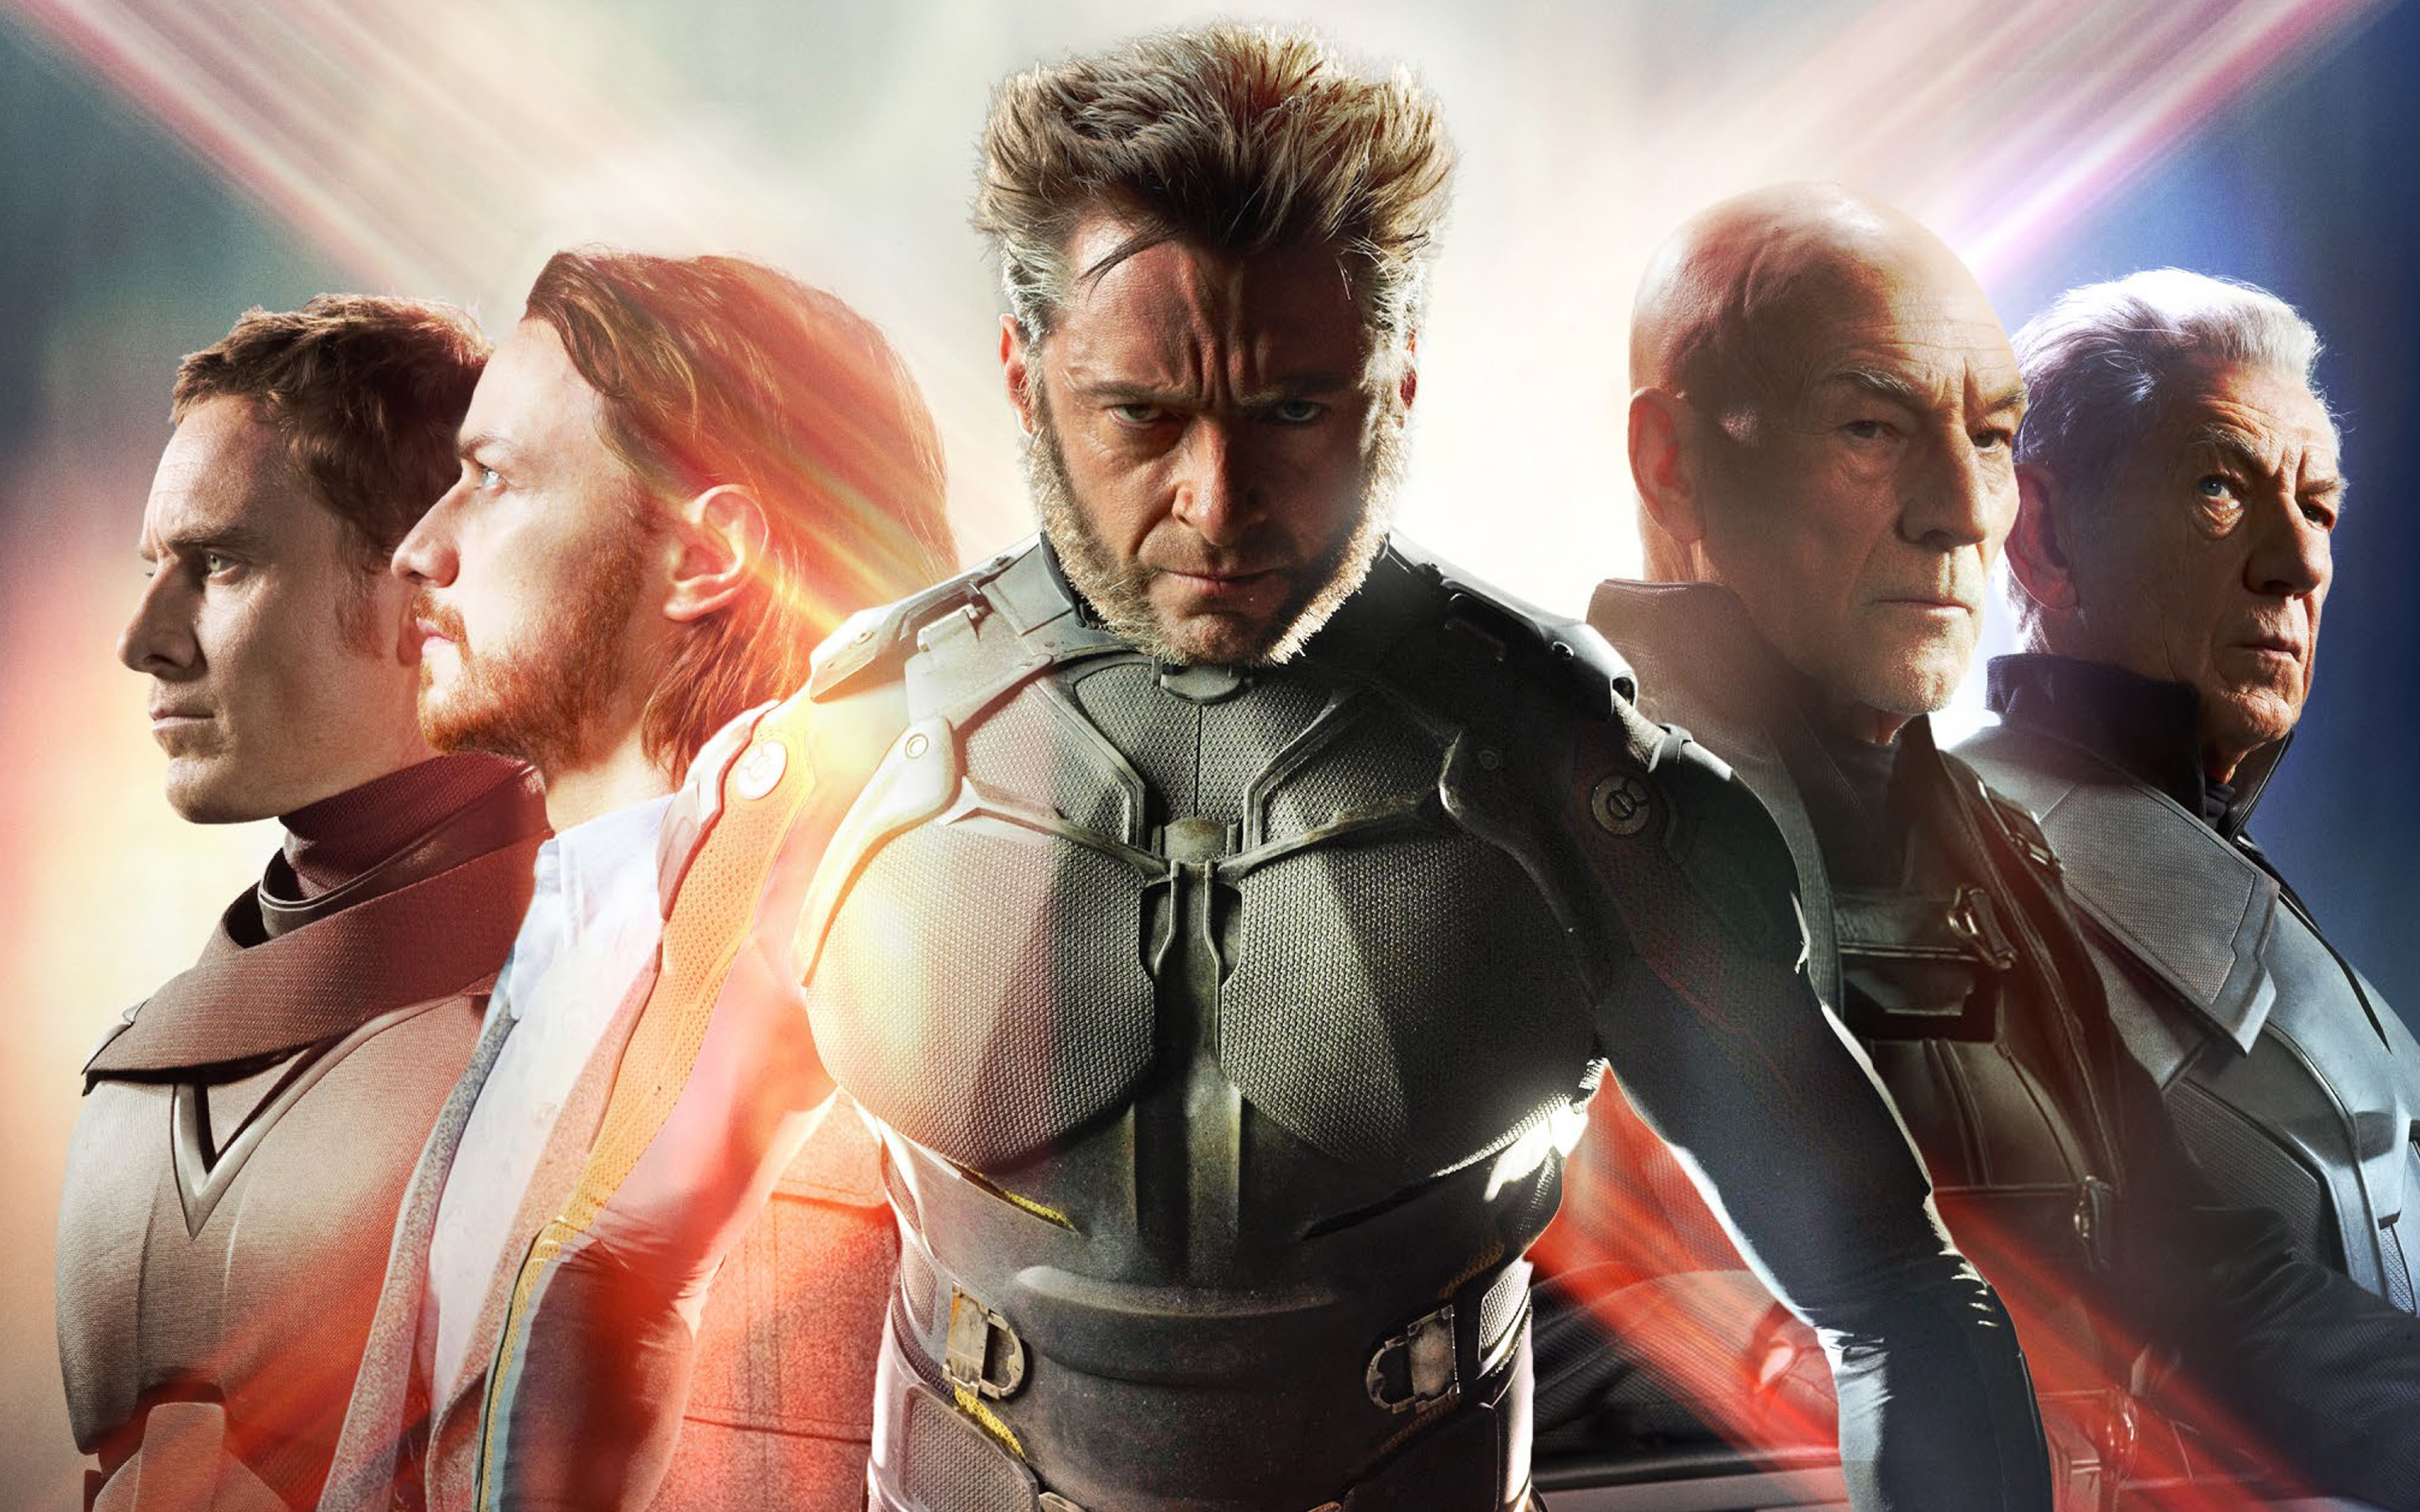 x men days of future past wallpapers | wallpapers hd